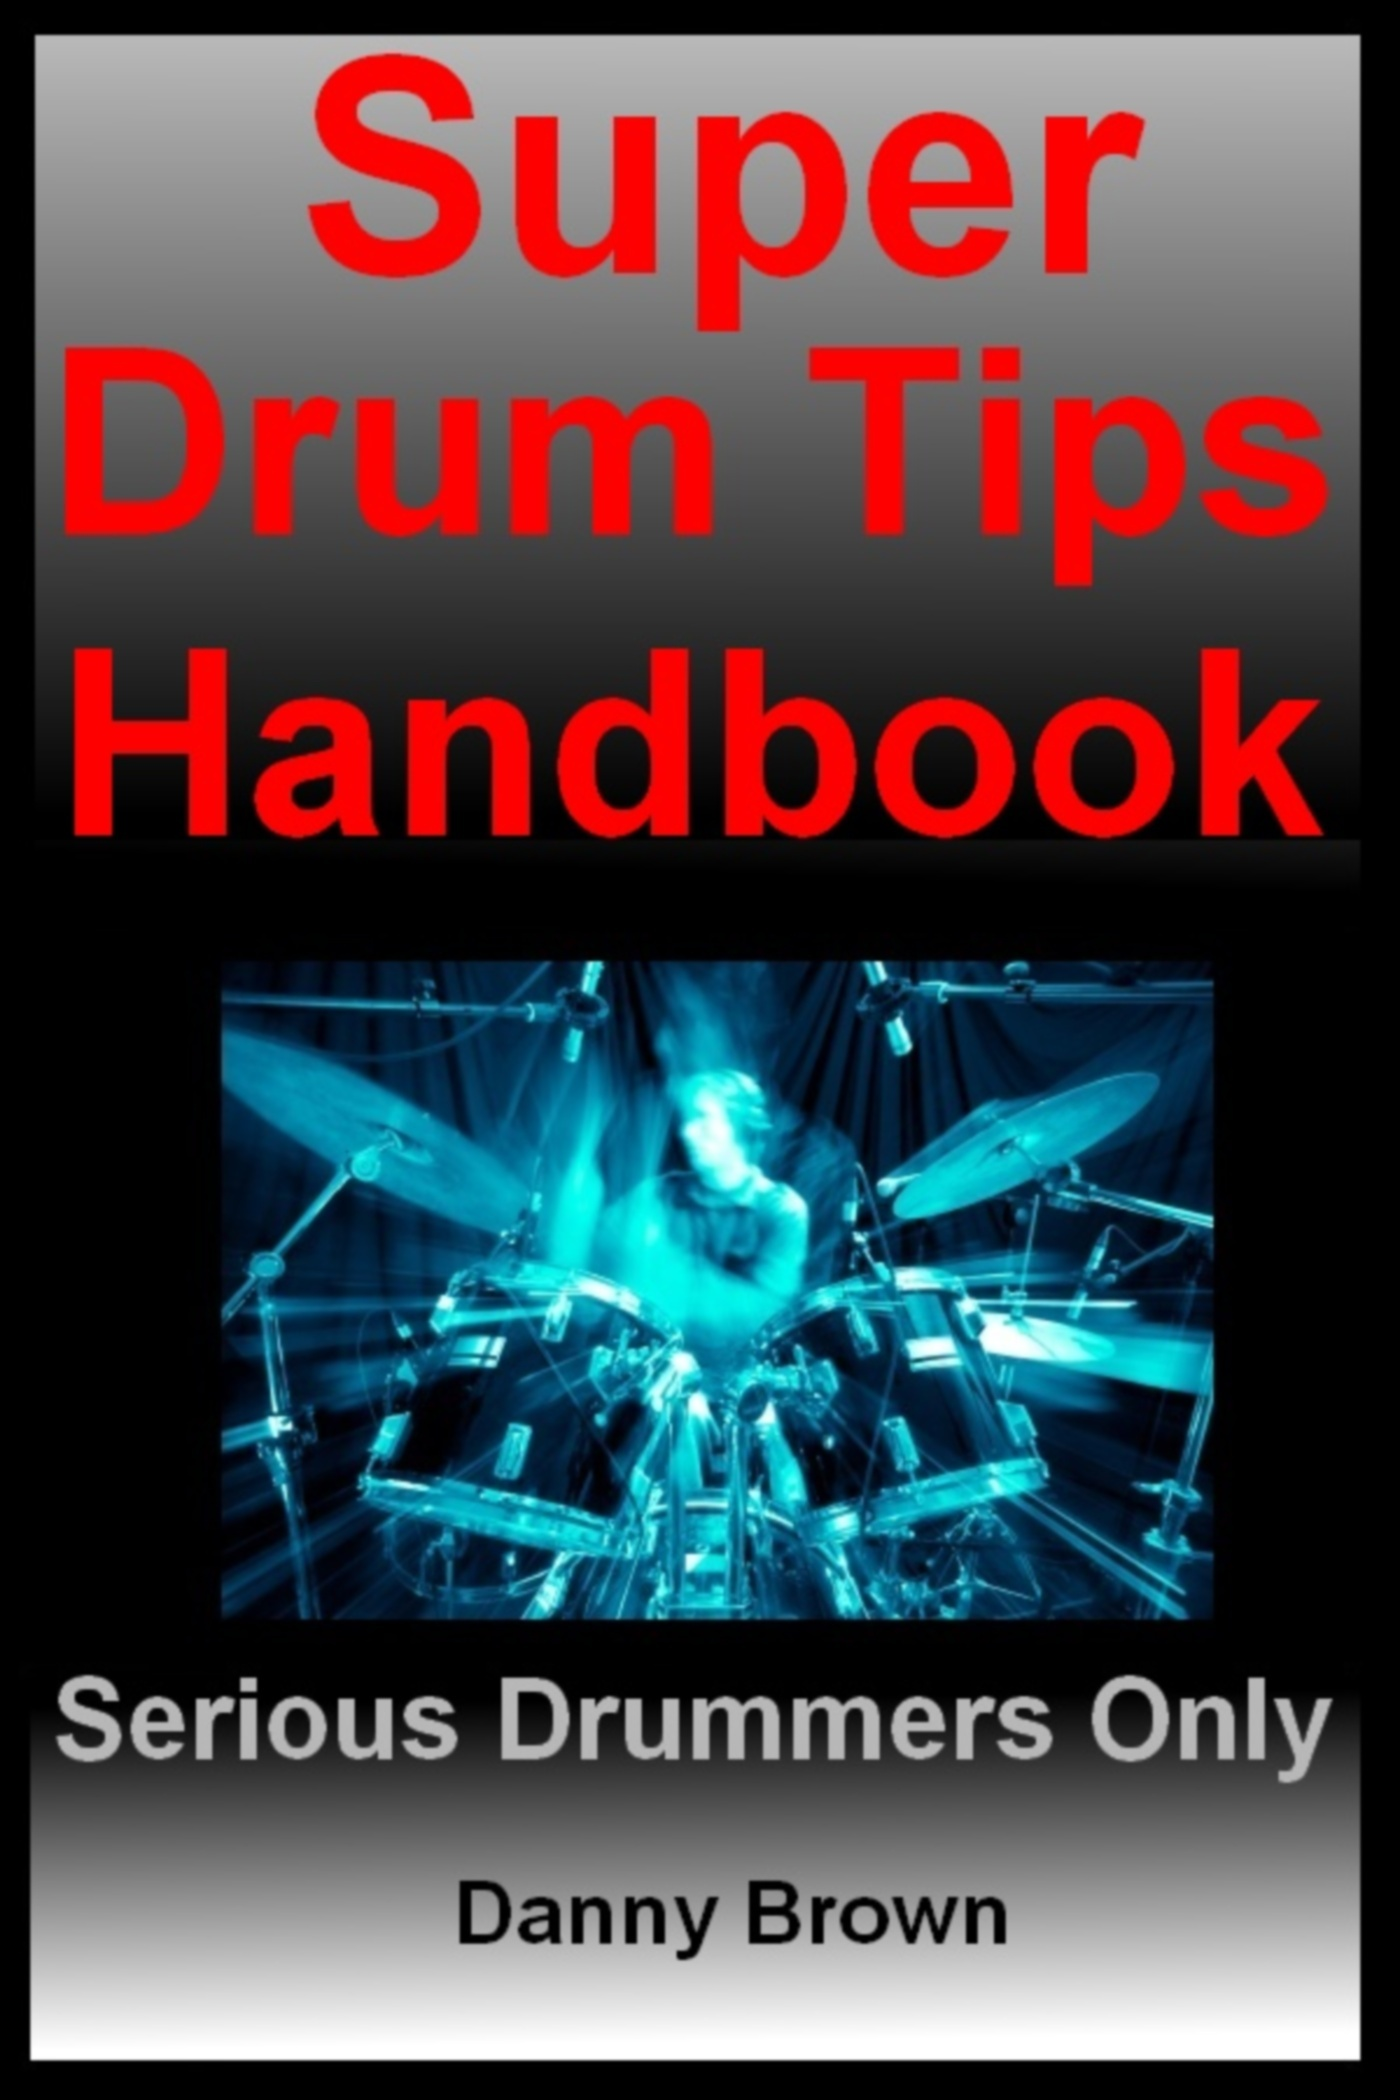 Super Drum Tips Handbook: For Drummers Who Are Serious About Music, Drums & Percussion